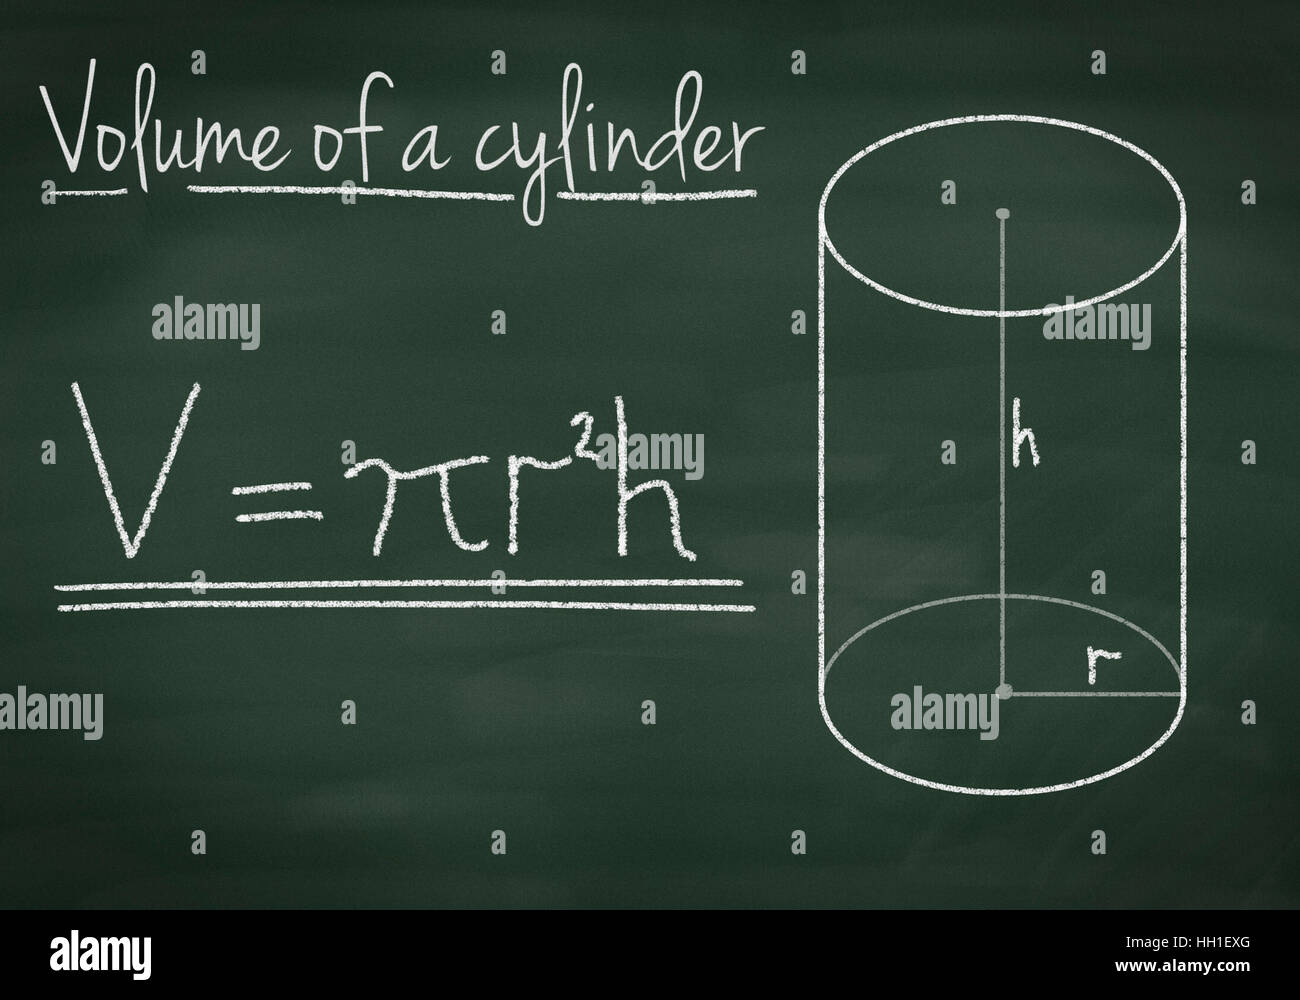 Volume of a cylinder on a chalkboard - Stock Image